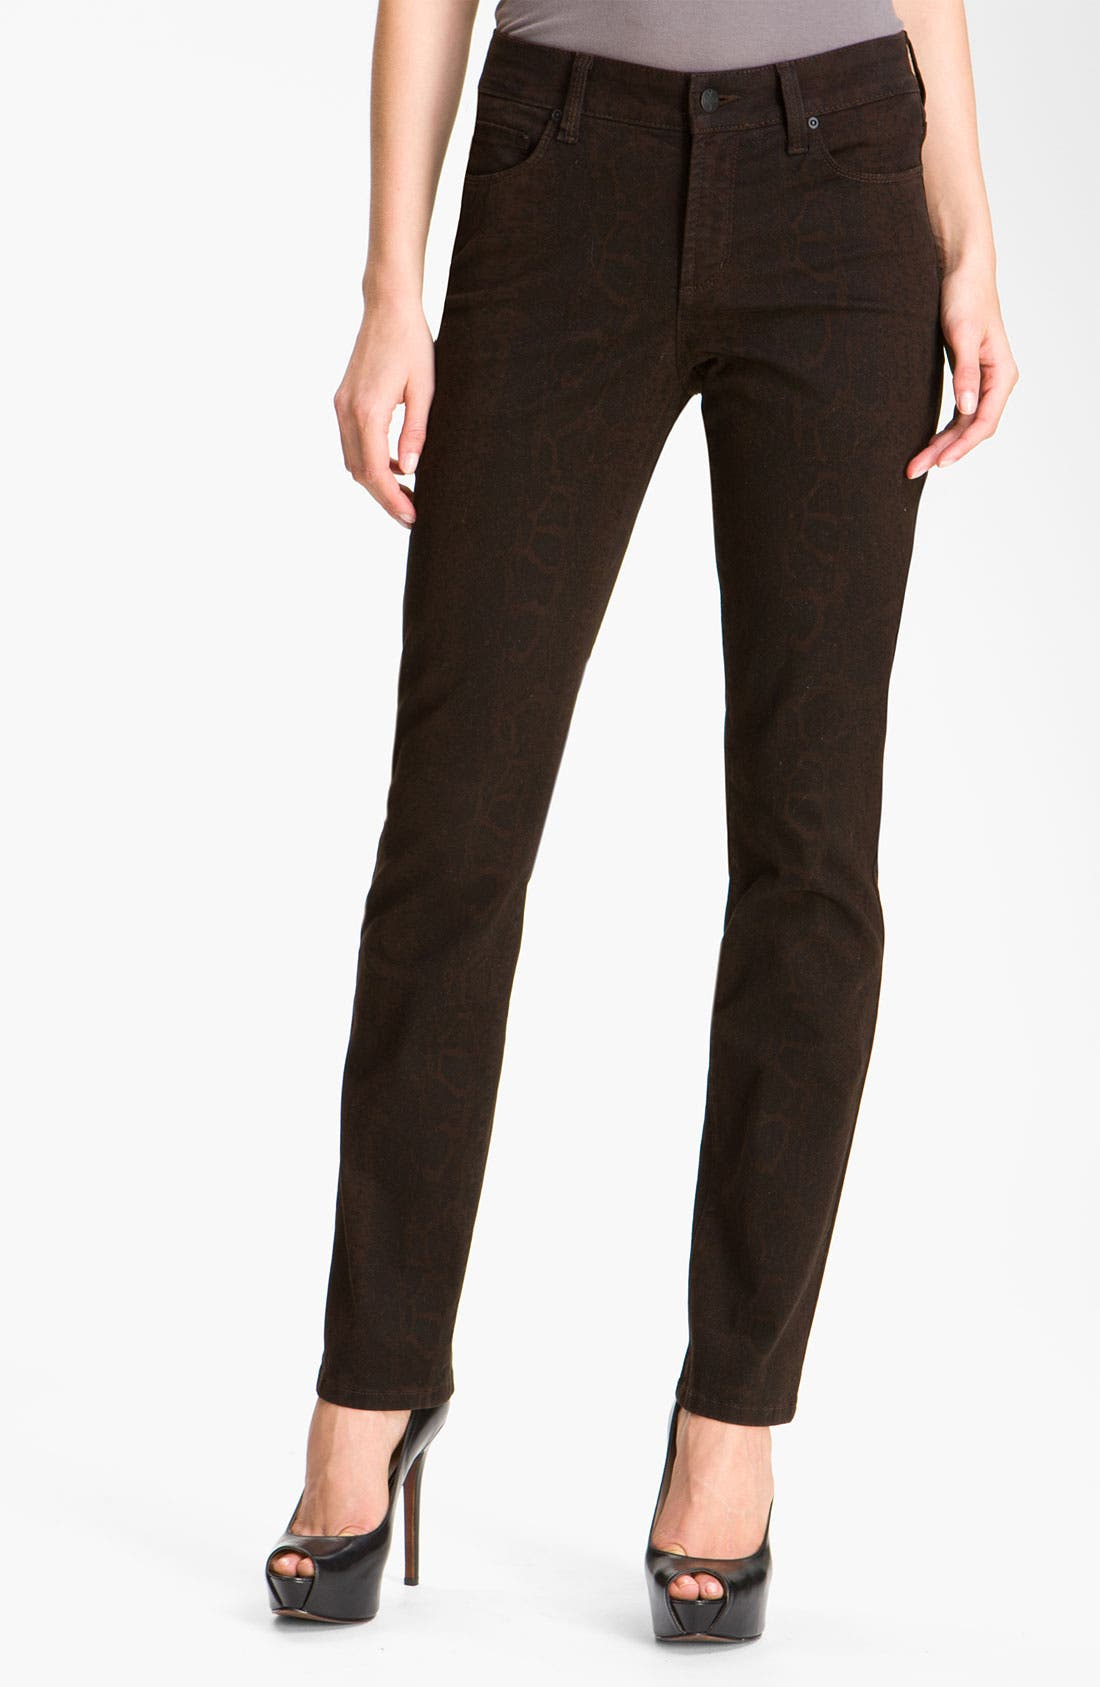 Alternate Image 1 Selected - NYDJ 'Sheri' Python Print Skinny Twill Jeans